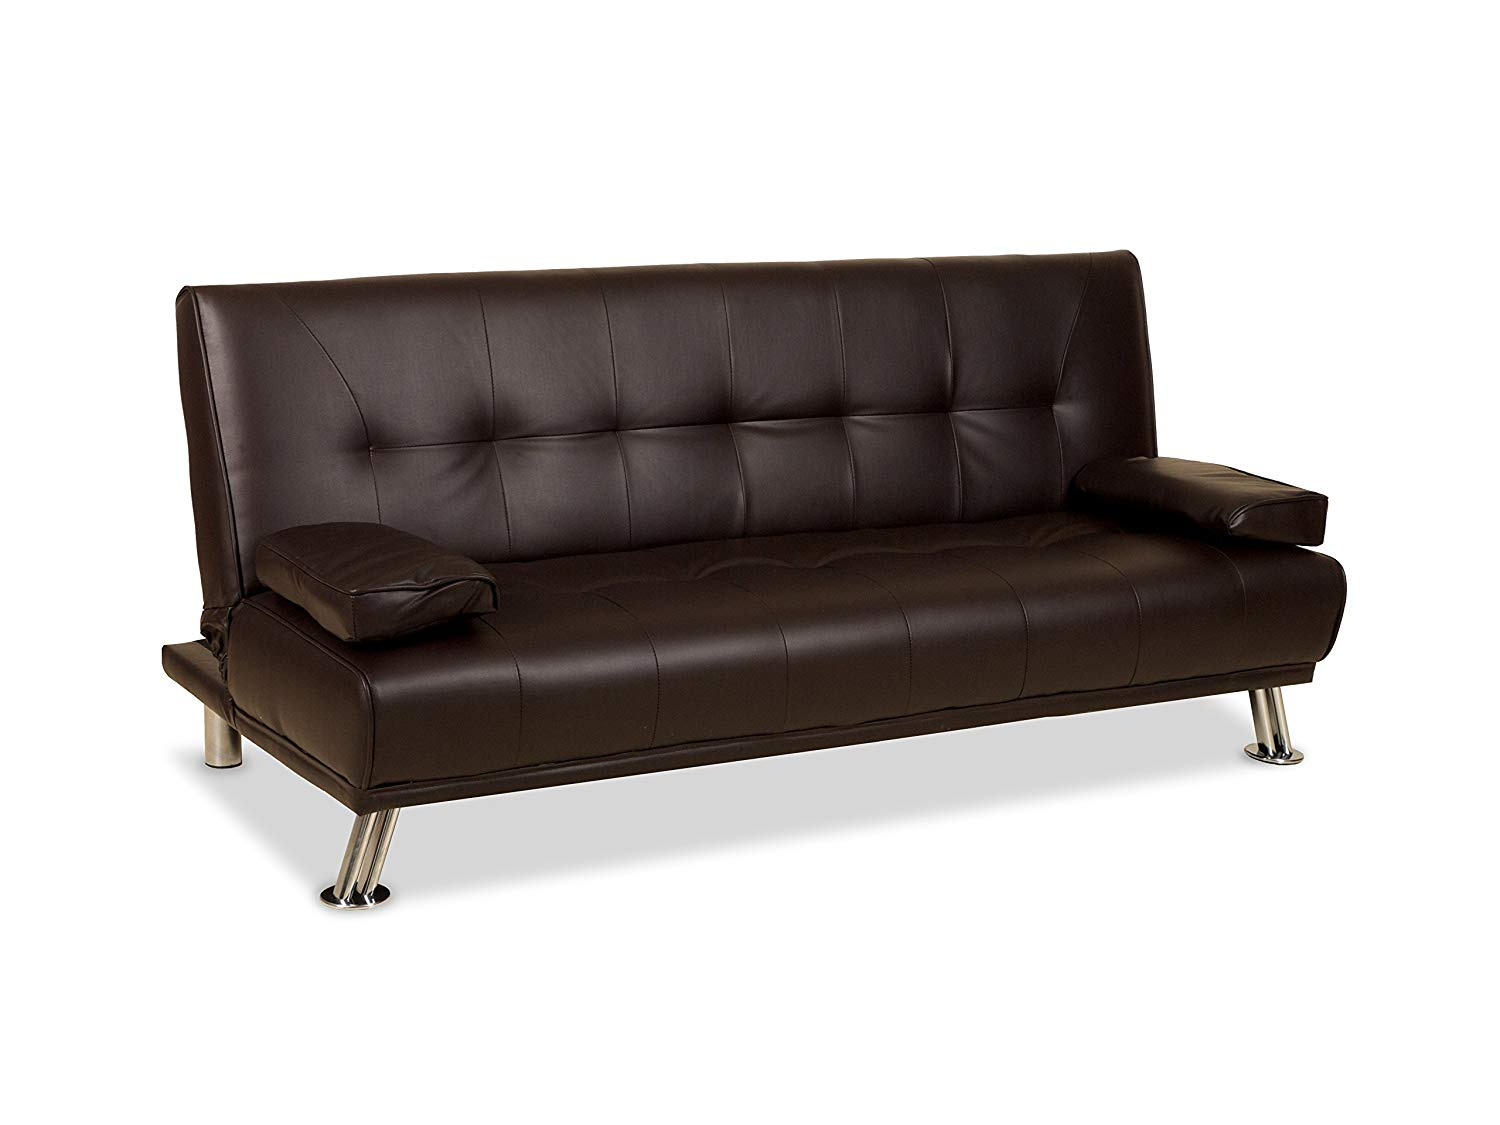 leather sofa bed humza amani venice faux leather sofa suite sette sofabed with chrome NGMOHXX